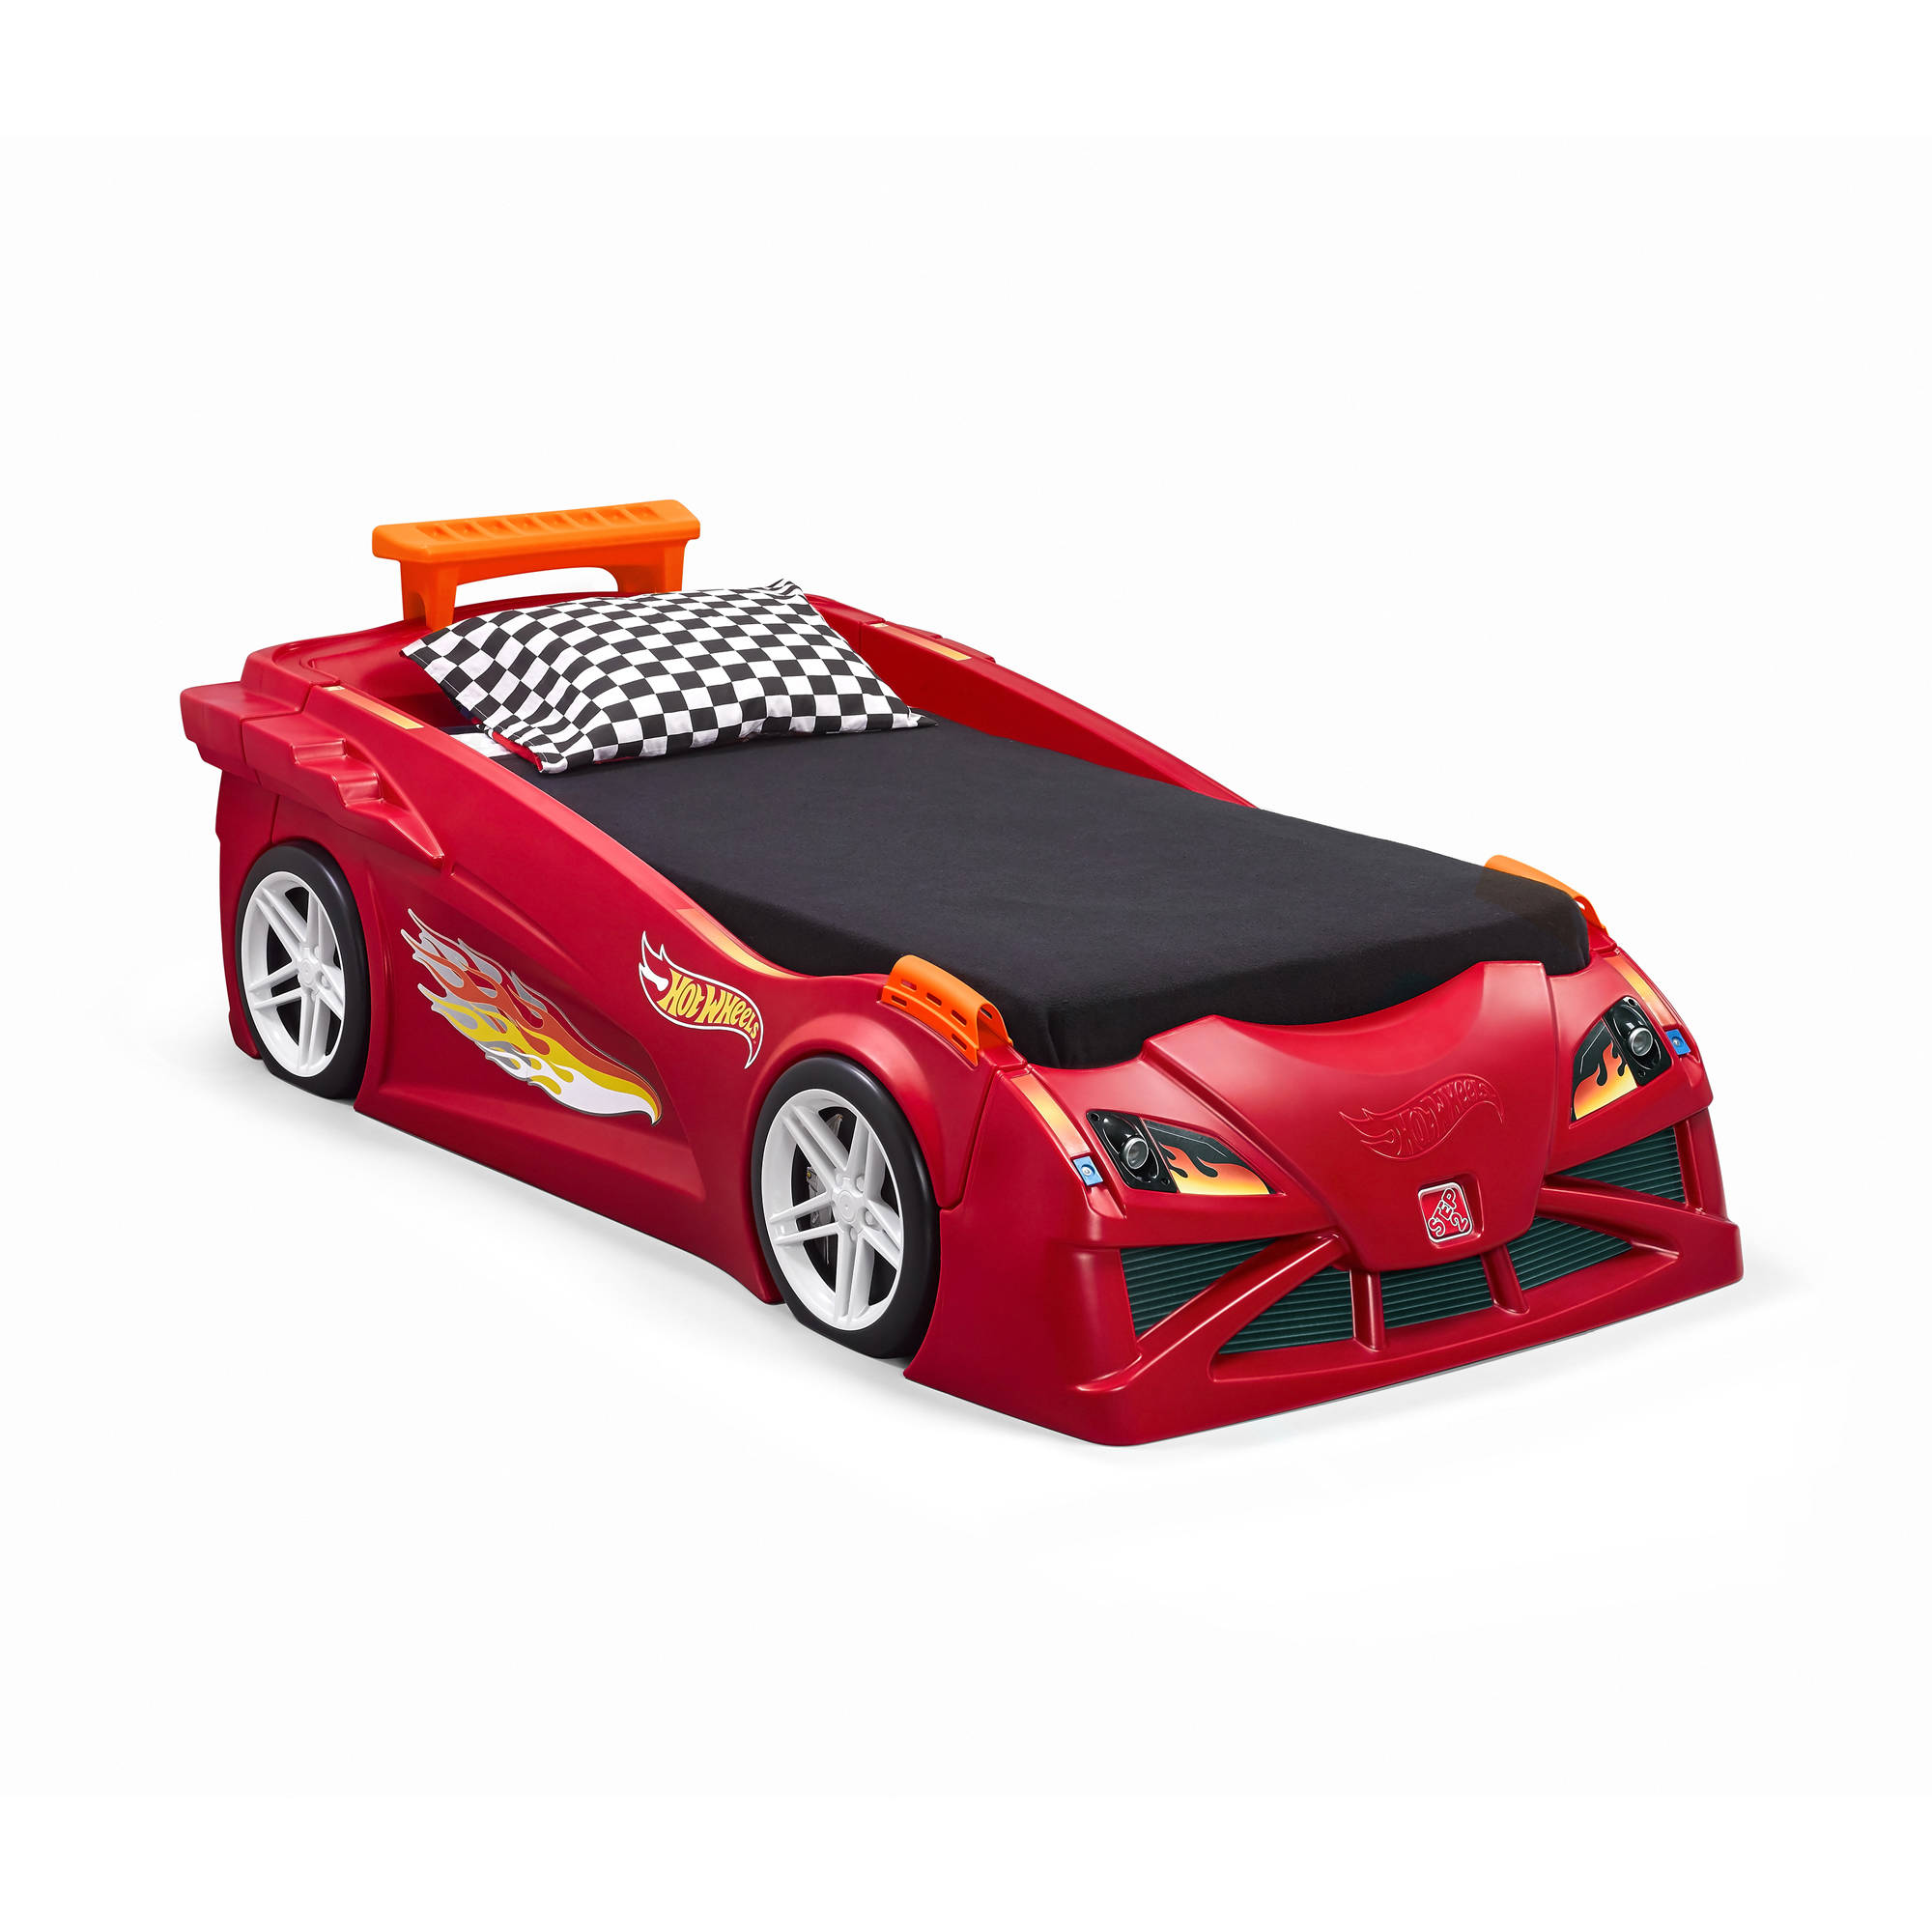 Hot Wheels clipart f1 racing car #12